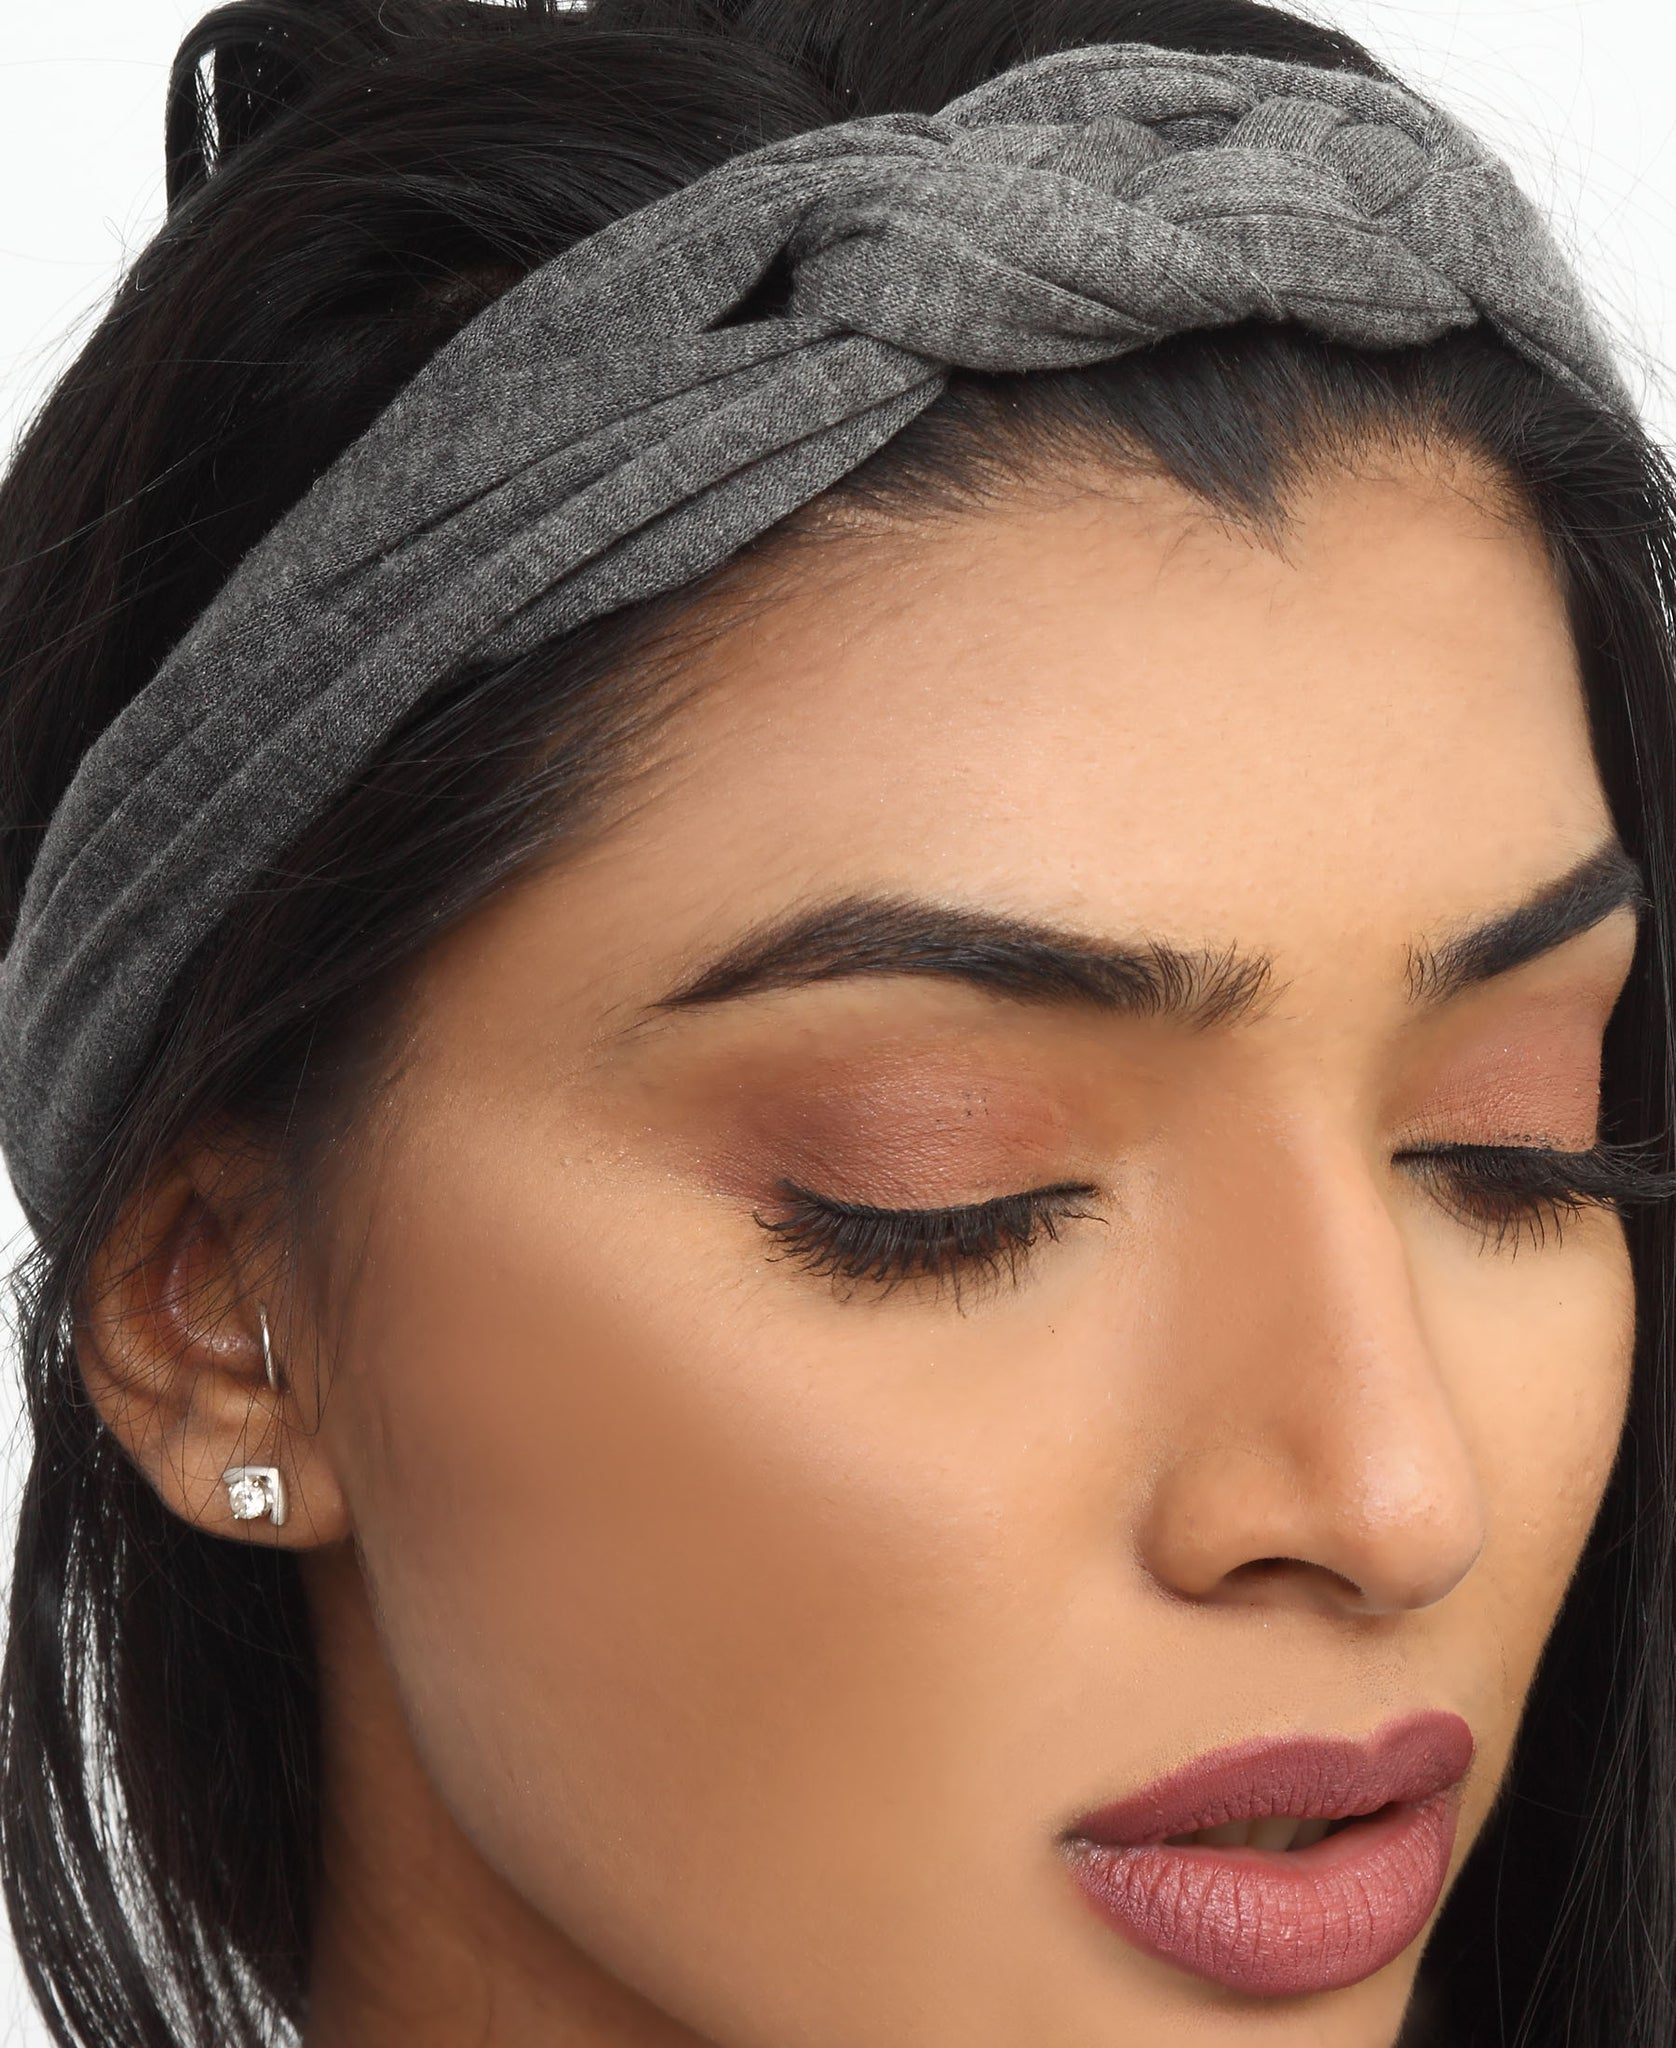 Fashion Headband - Grey